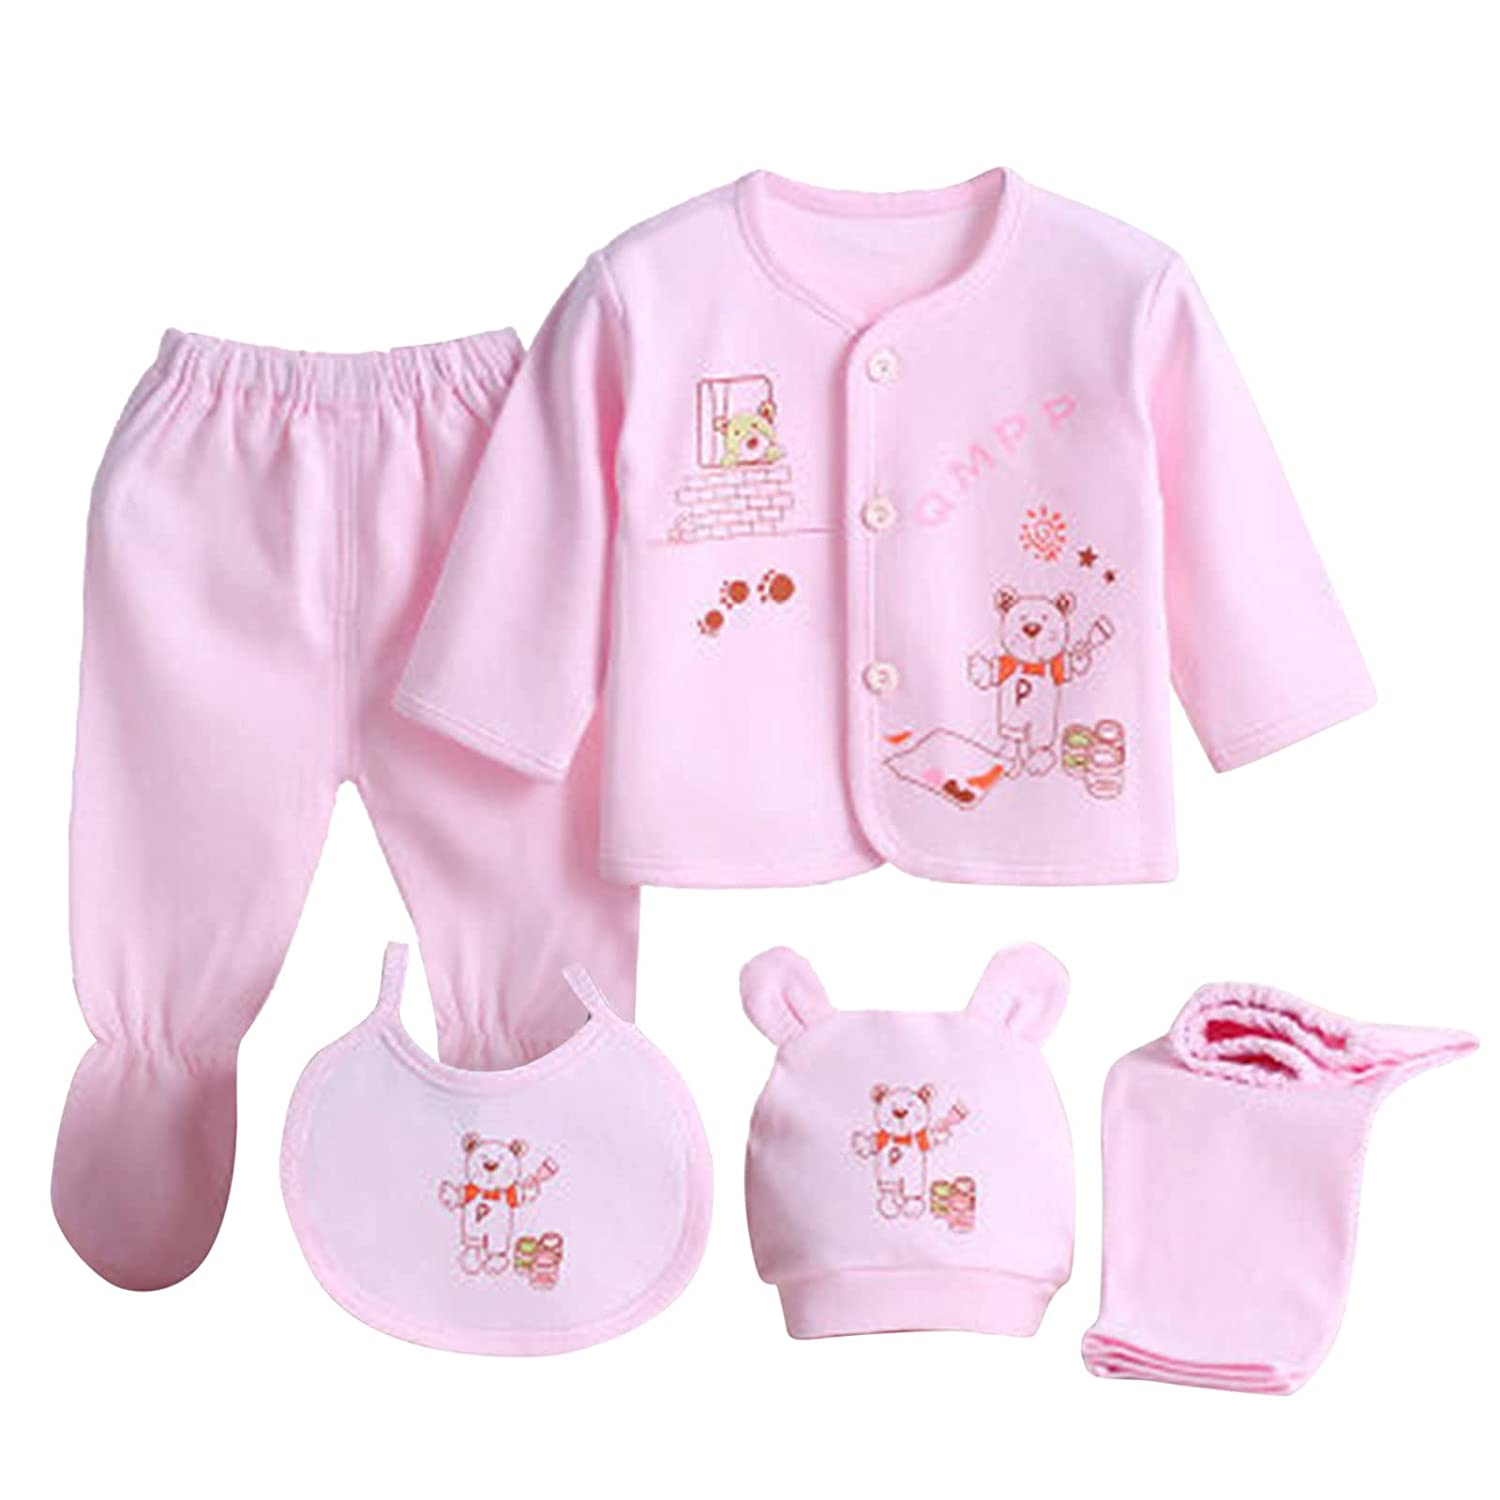 One Size Quantity limited Toddler Boy Cash special price Girl Set Outfit Underwear Sleepwear Pajamas